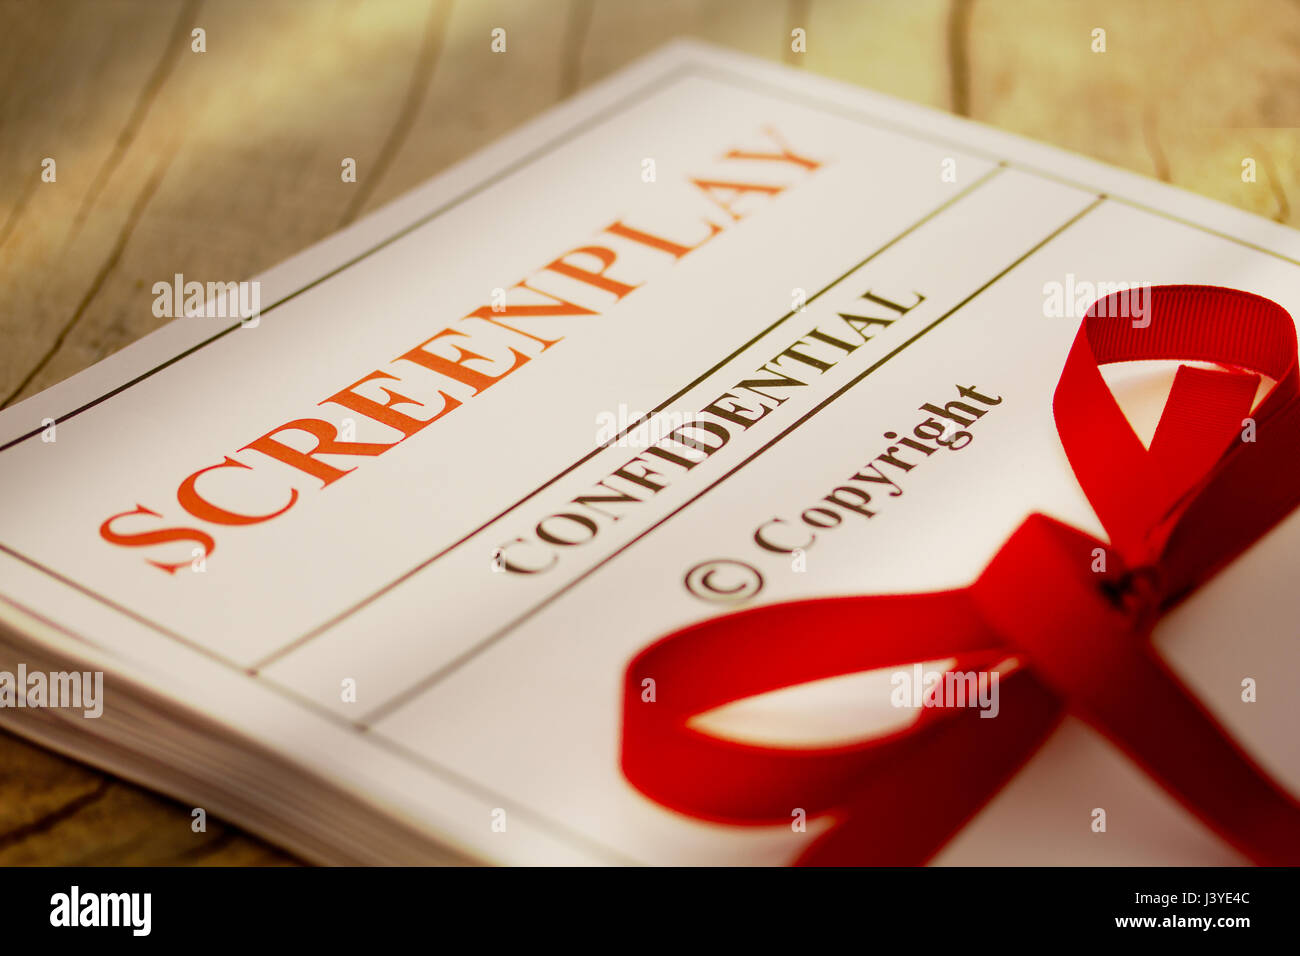 Screenplay Manuscript by Author ready for Proofreading Closeup - Stock Image